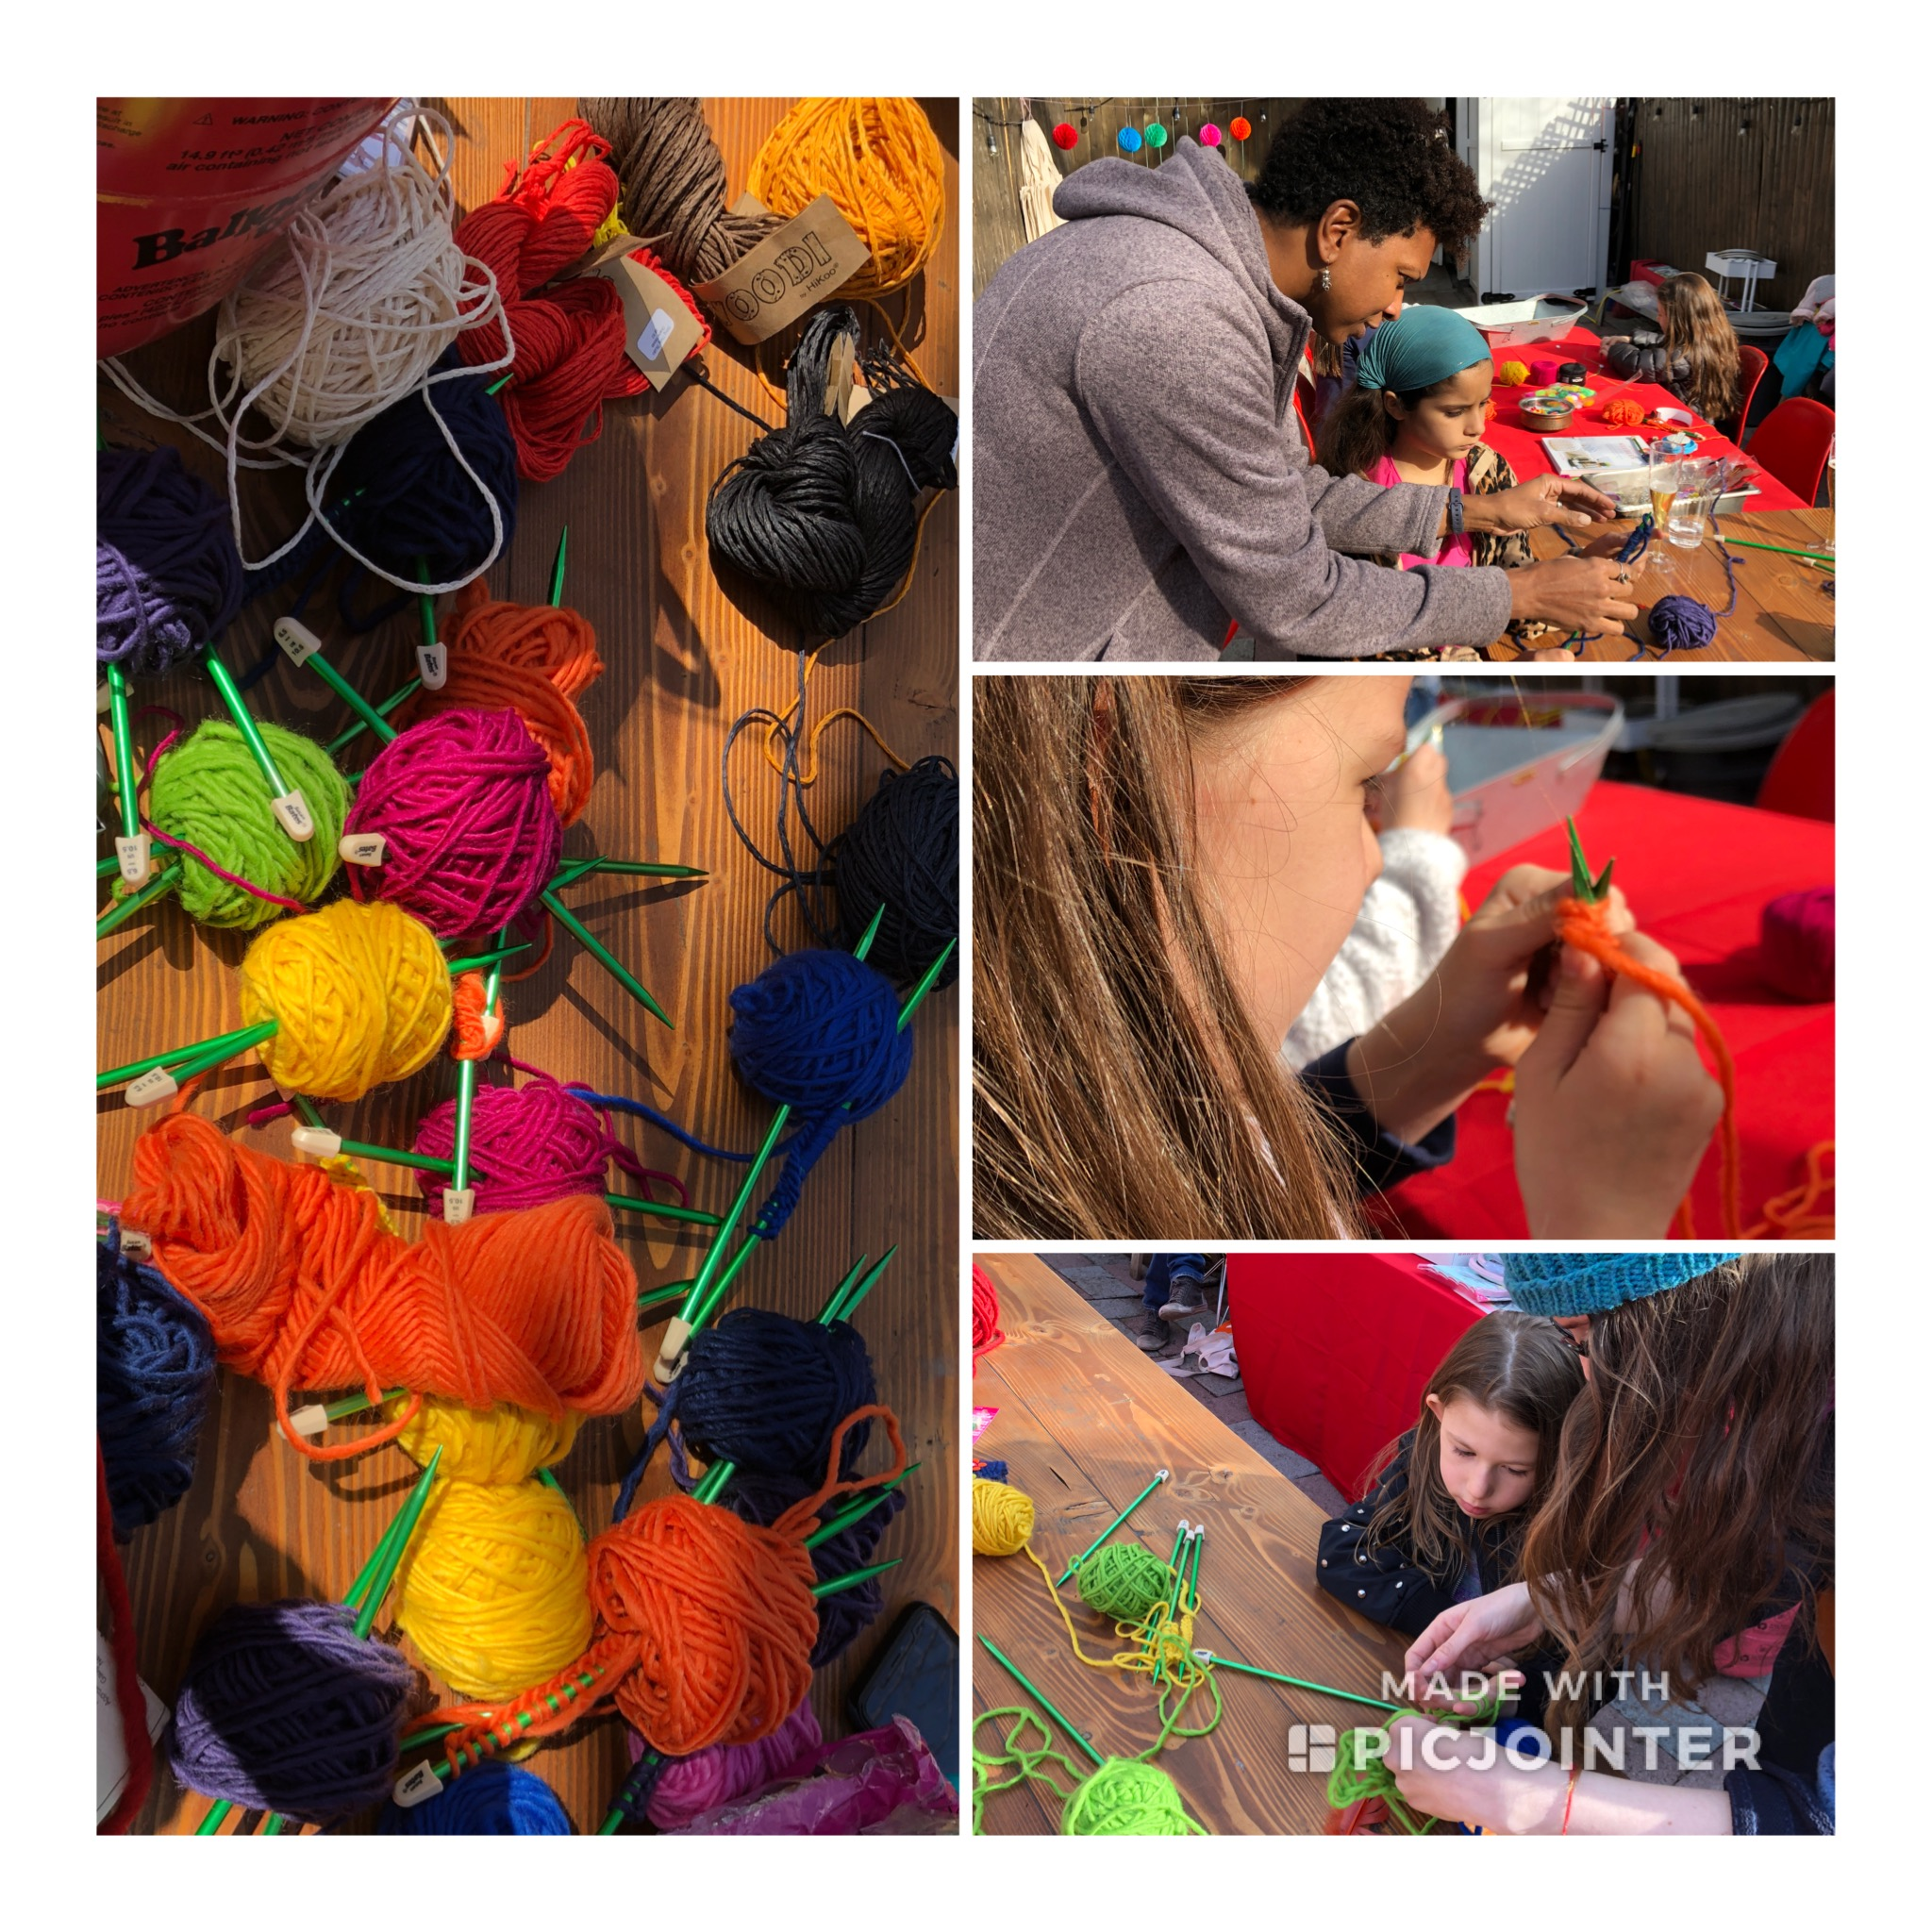 Don't we all remember - the first time we picked up yarn and knitting needles and began to create something? Here at String Thing Studio, we would love to be there at the beginning of your child's fiber journey! In this 2 hour introductory kid friendly class we introduce them to the basics of the craft. At the end of this class, if your child likes it and wants to continue, there are additional lessons that can be given to build on these skills. If you would like for your child to have a weekly program take a look at our Afterschool Program. We also offer class packs of 5 and 10 classes.This class is best suited for children ages 7-12 years old.